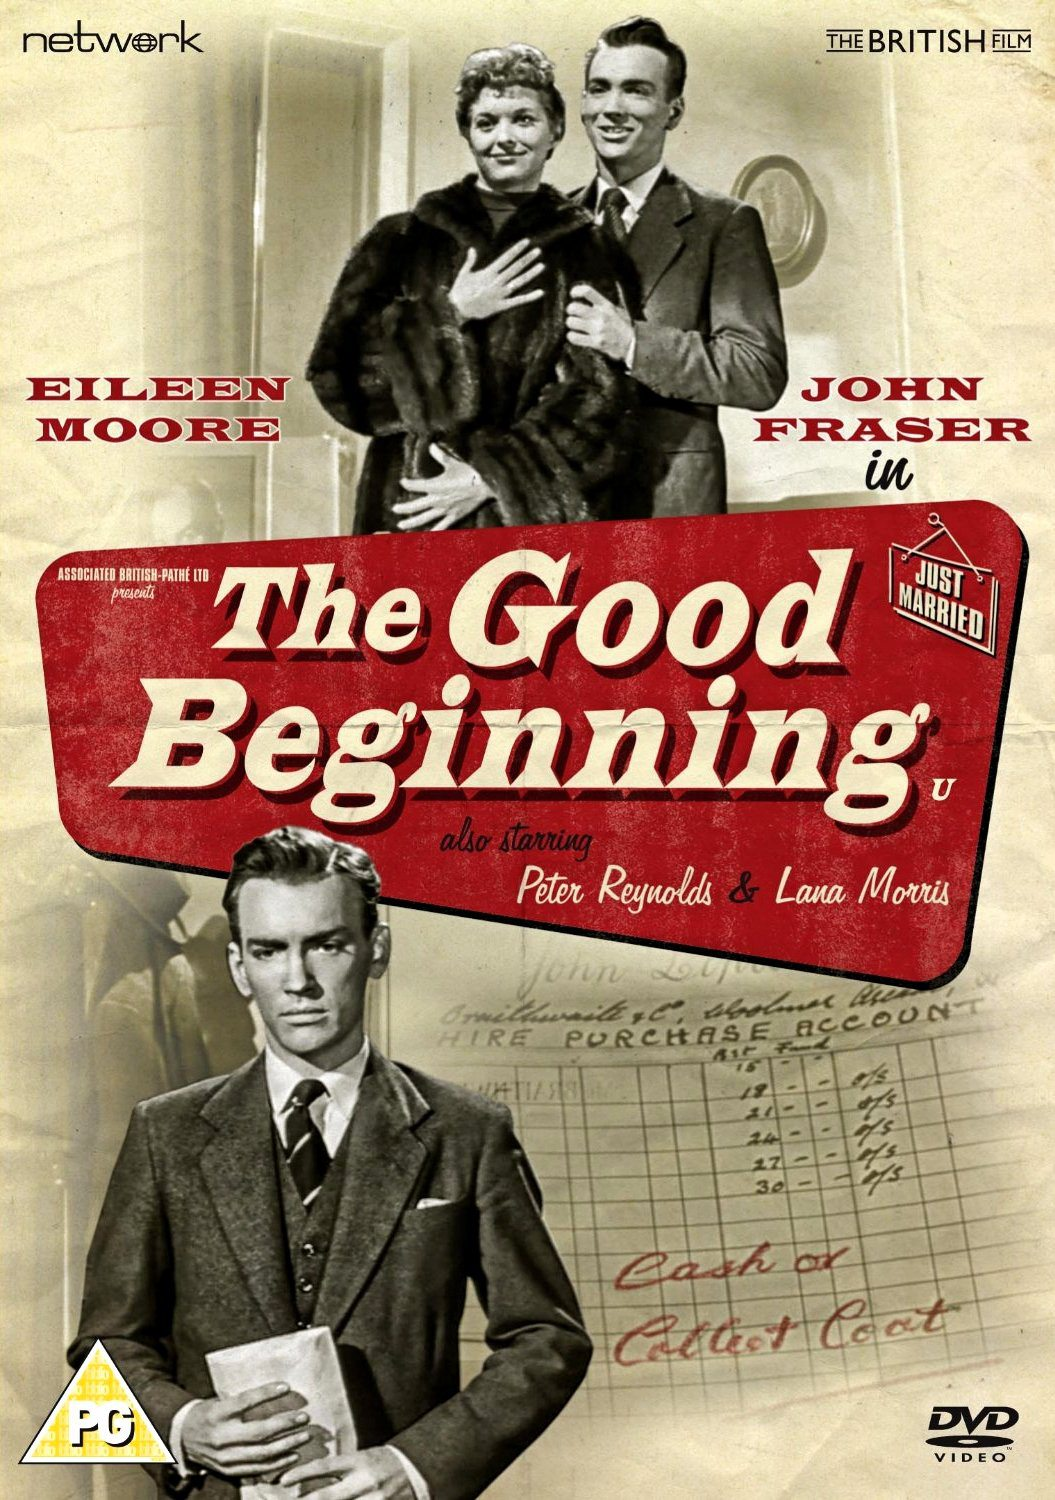 Good Beginning DVD from Network and The British Film (2015). Features Eileen Moore and John Fraser.